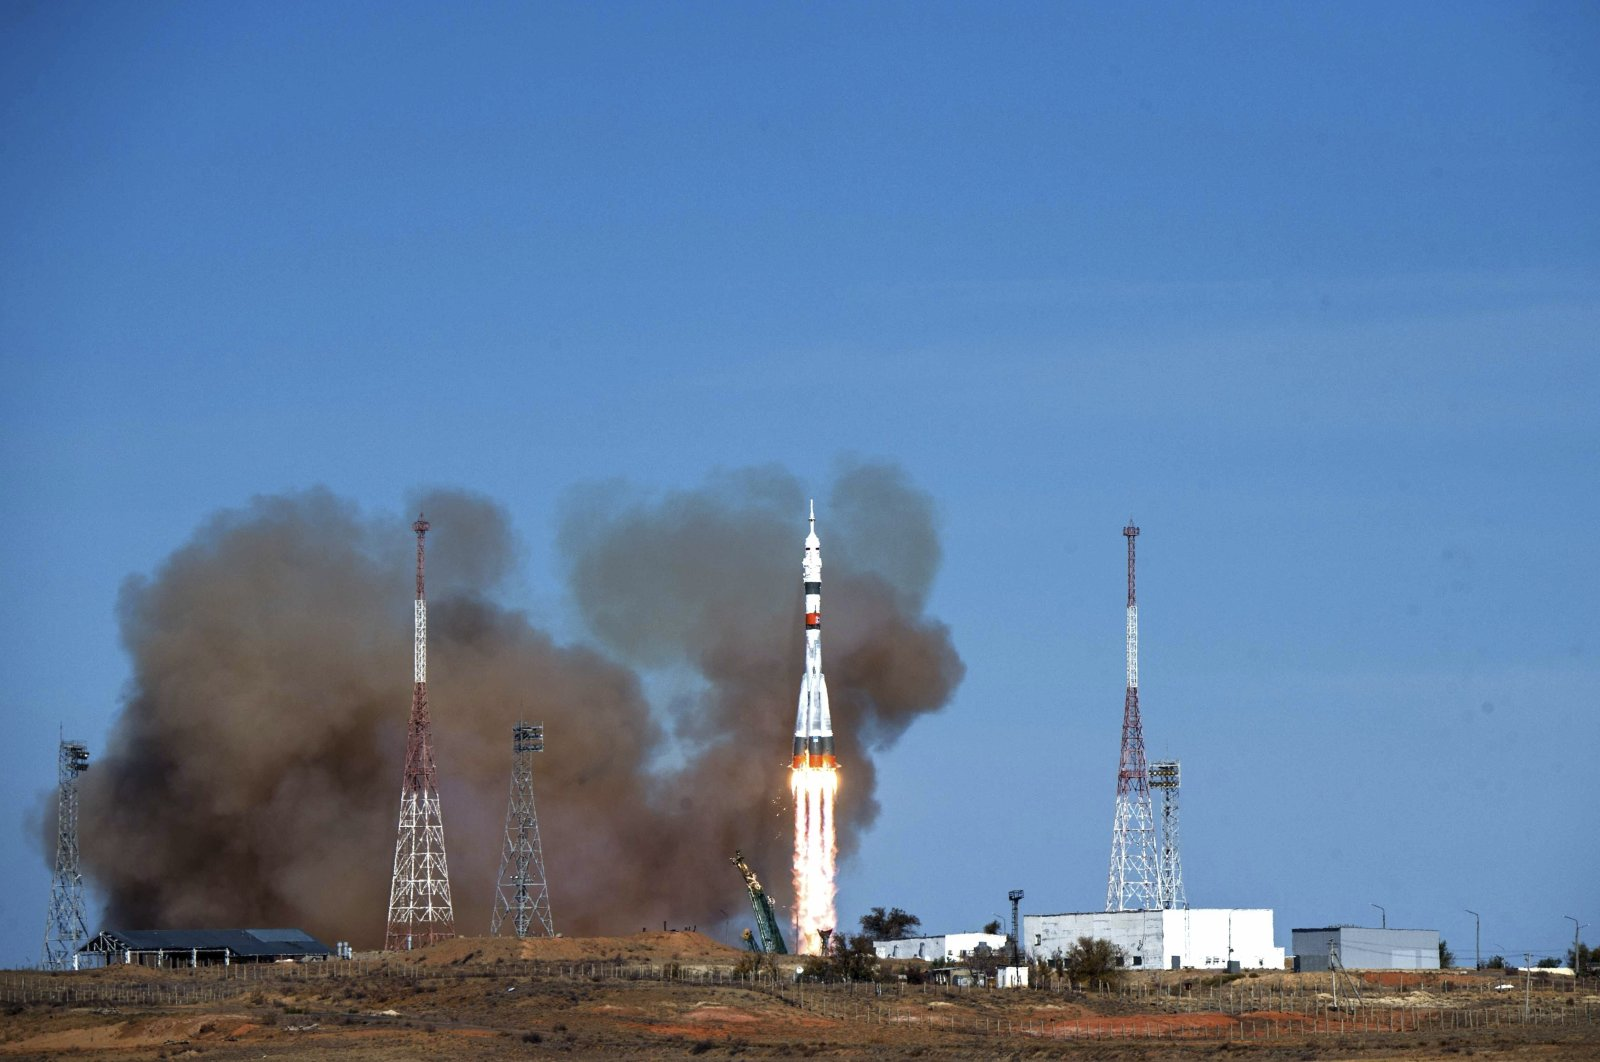 The Soyuz-2.1a rocket booster with the Soyuz MS-17 space ship carrying a new crew to the International Space Station (ISS) blasts off at the Russian leased Baikonur cosmodrome, Kazakhstan, Oct. 14, 2020, in this handout photo released by Roscosmos Space Agency. (AP Photo)